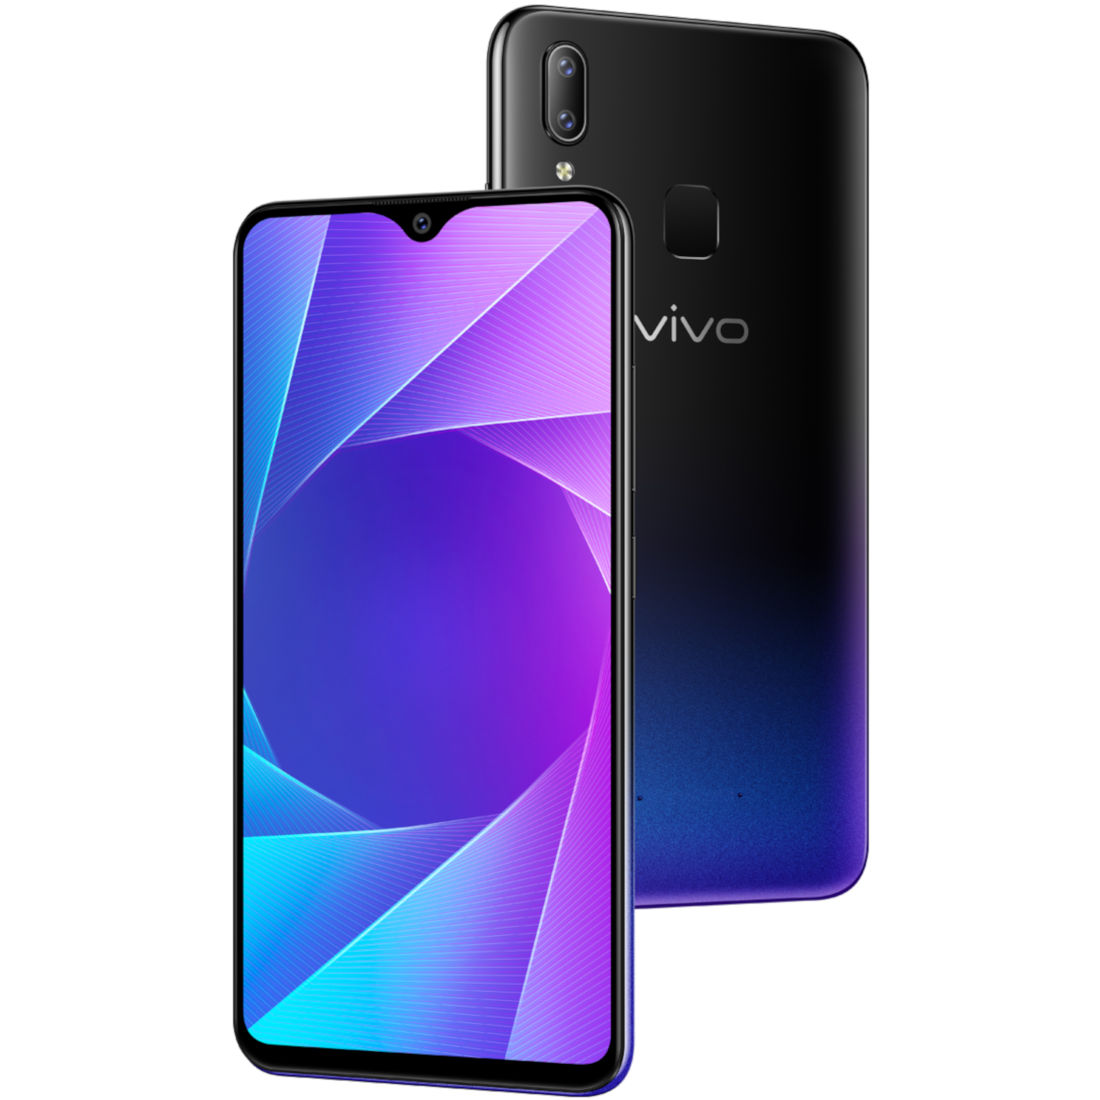 92e406ee07e Vivo Y95 gets another price cut in India, now available for Rs. 13990